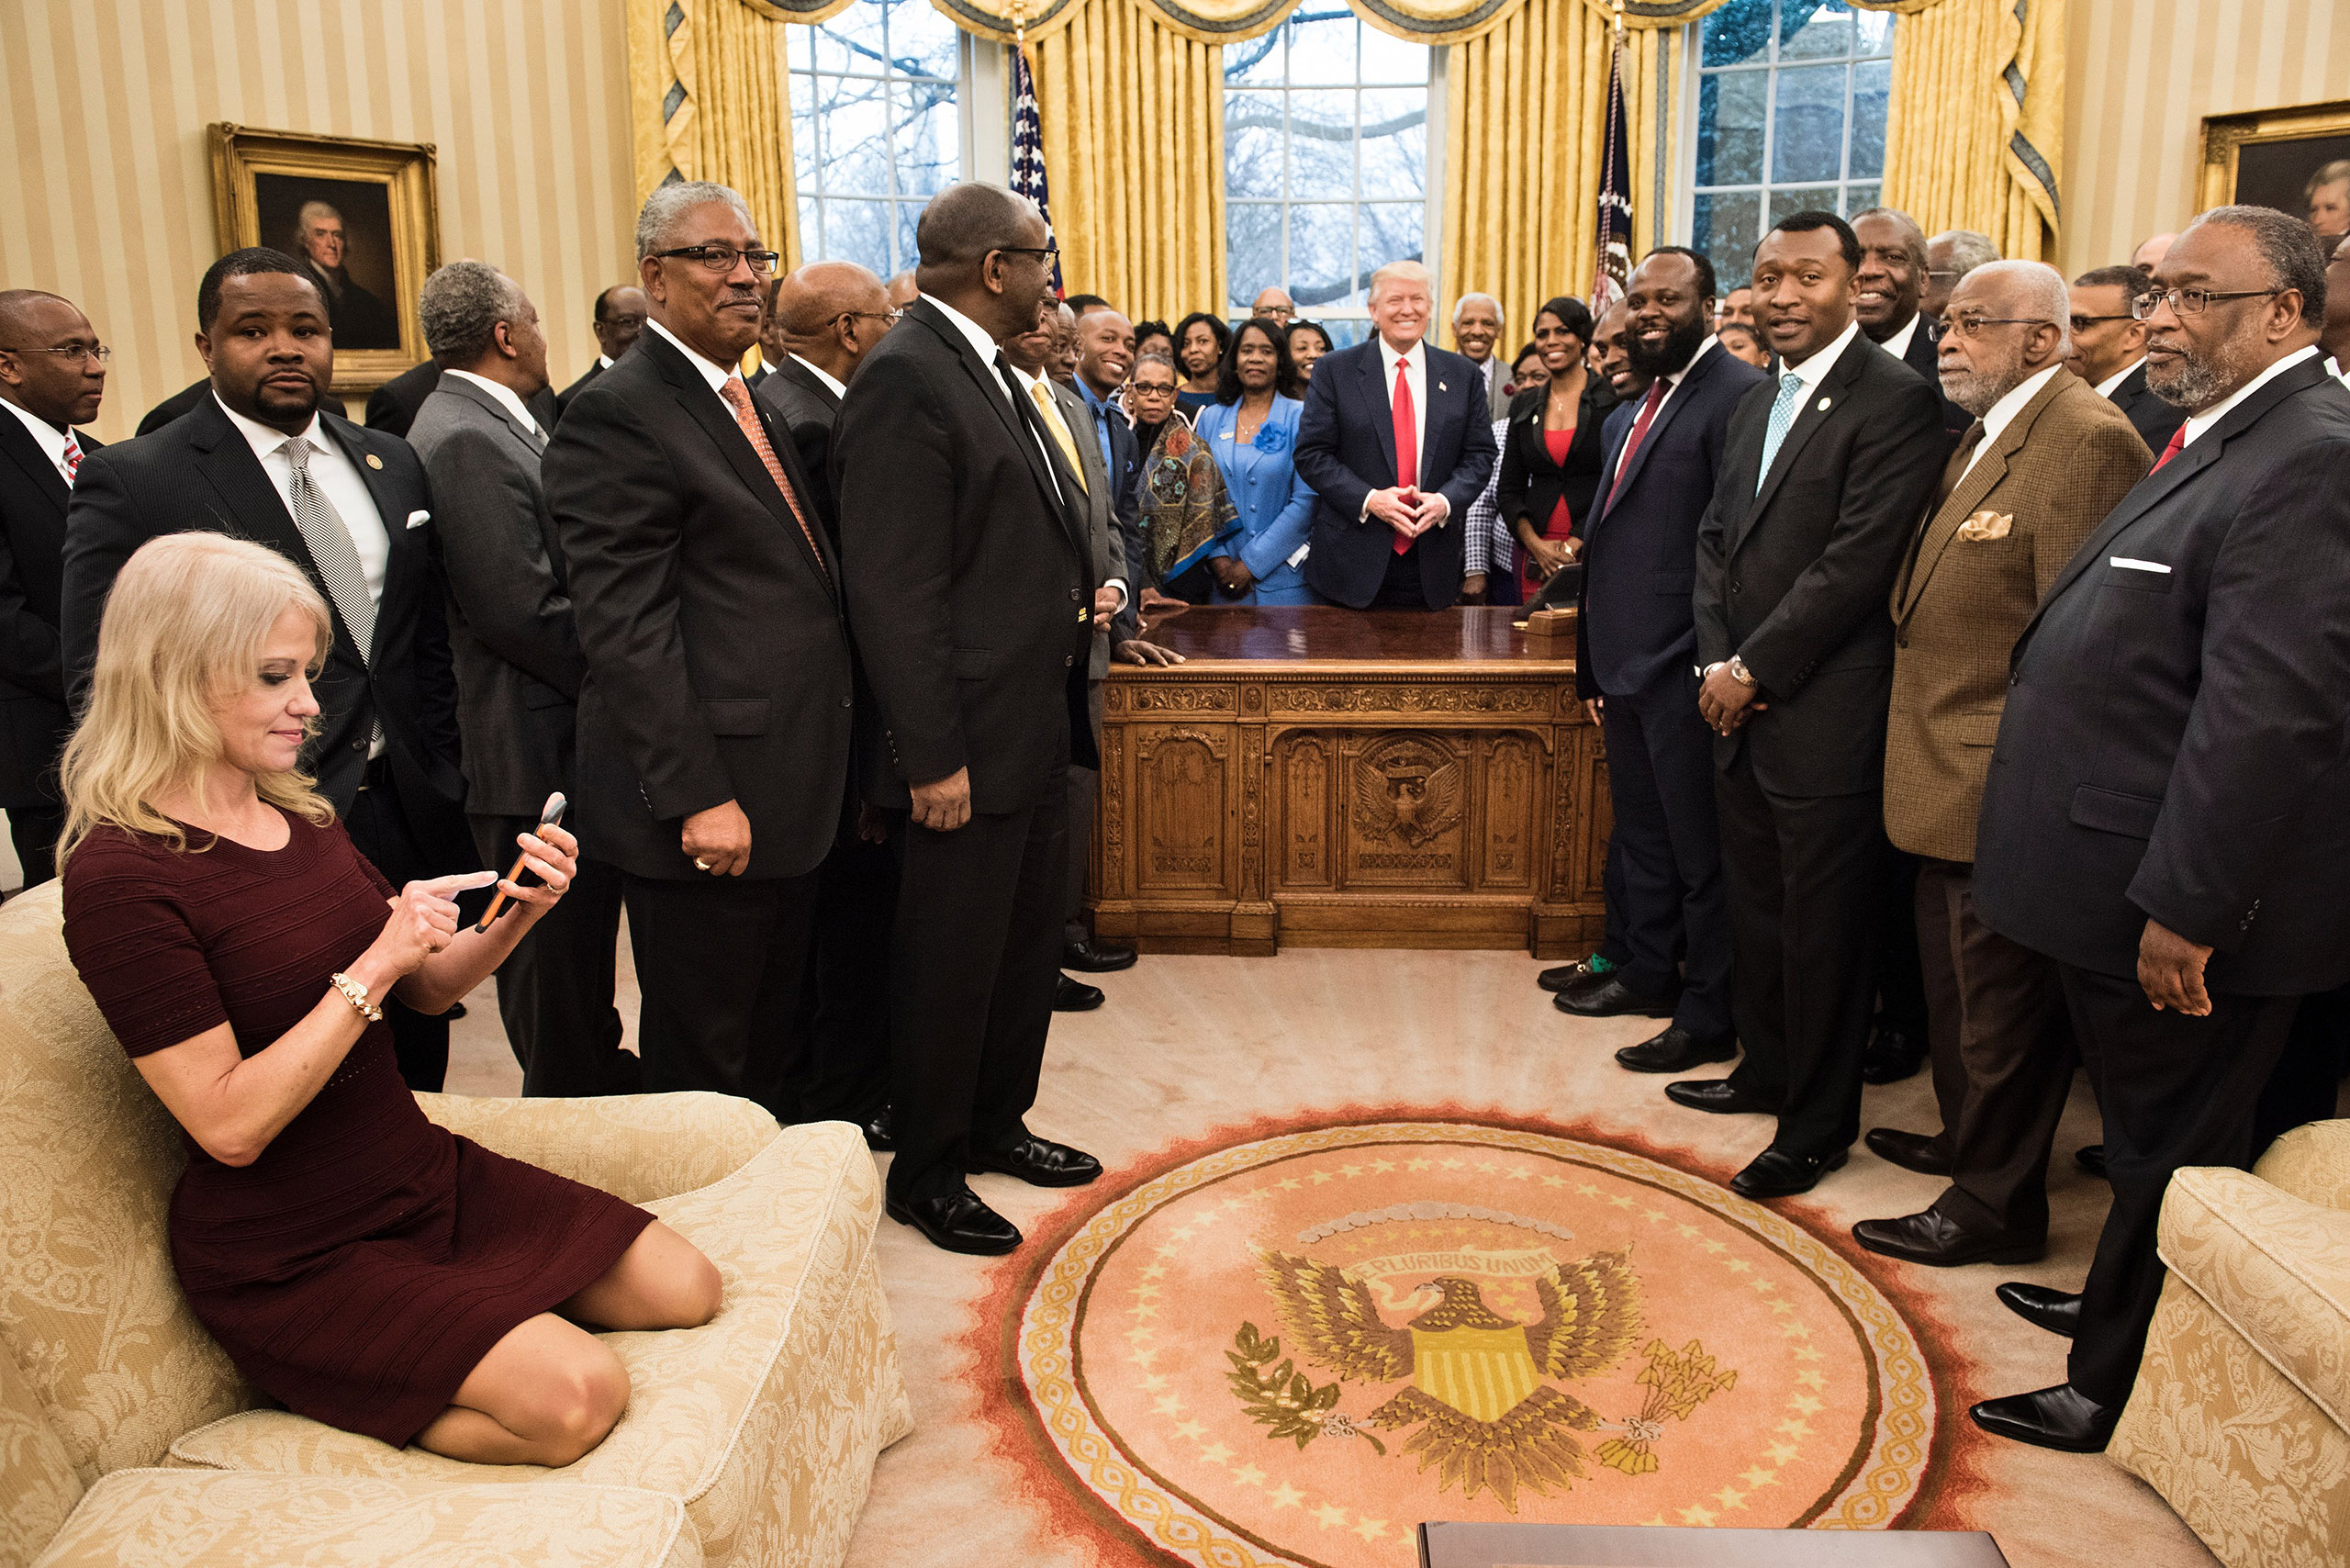 Counselor to the President Kellyanne Conway (L) checks her phone after taking a photo as US President Donald Trump and leaders of historically black universities and colleges pose for a group photo in the Oval Office of the White House in Washington, DC on February 27, 2017.